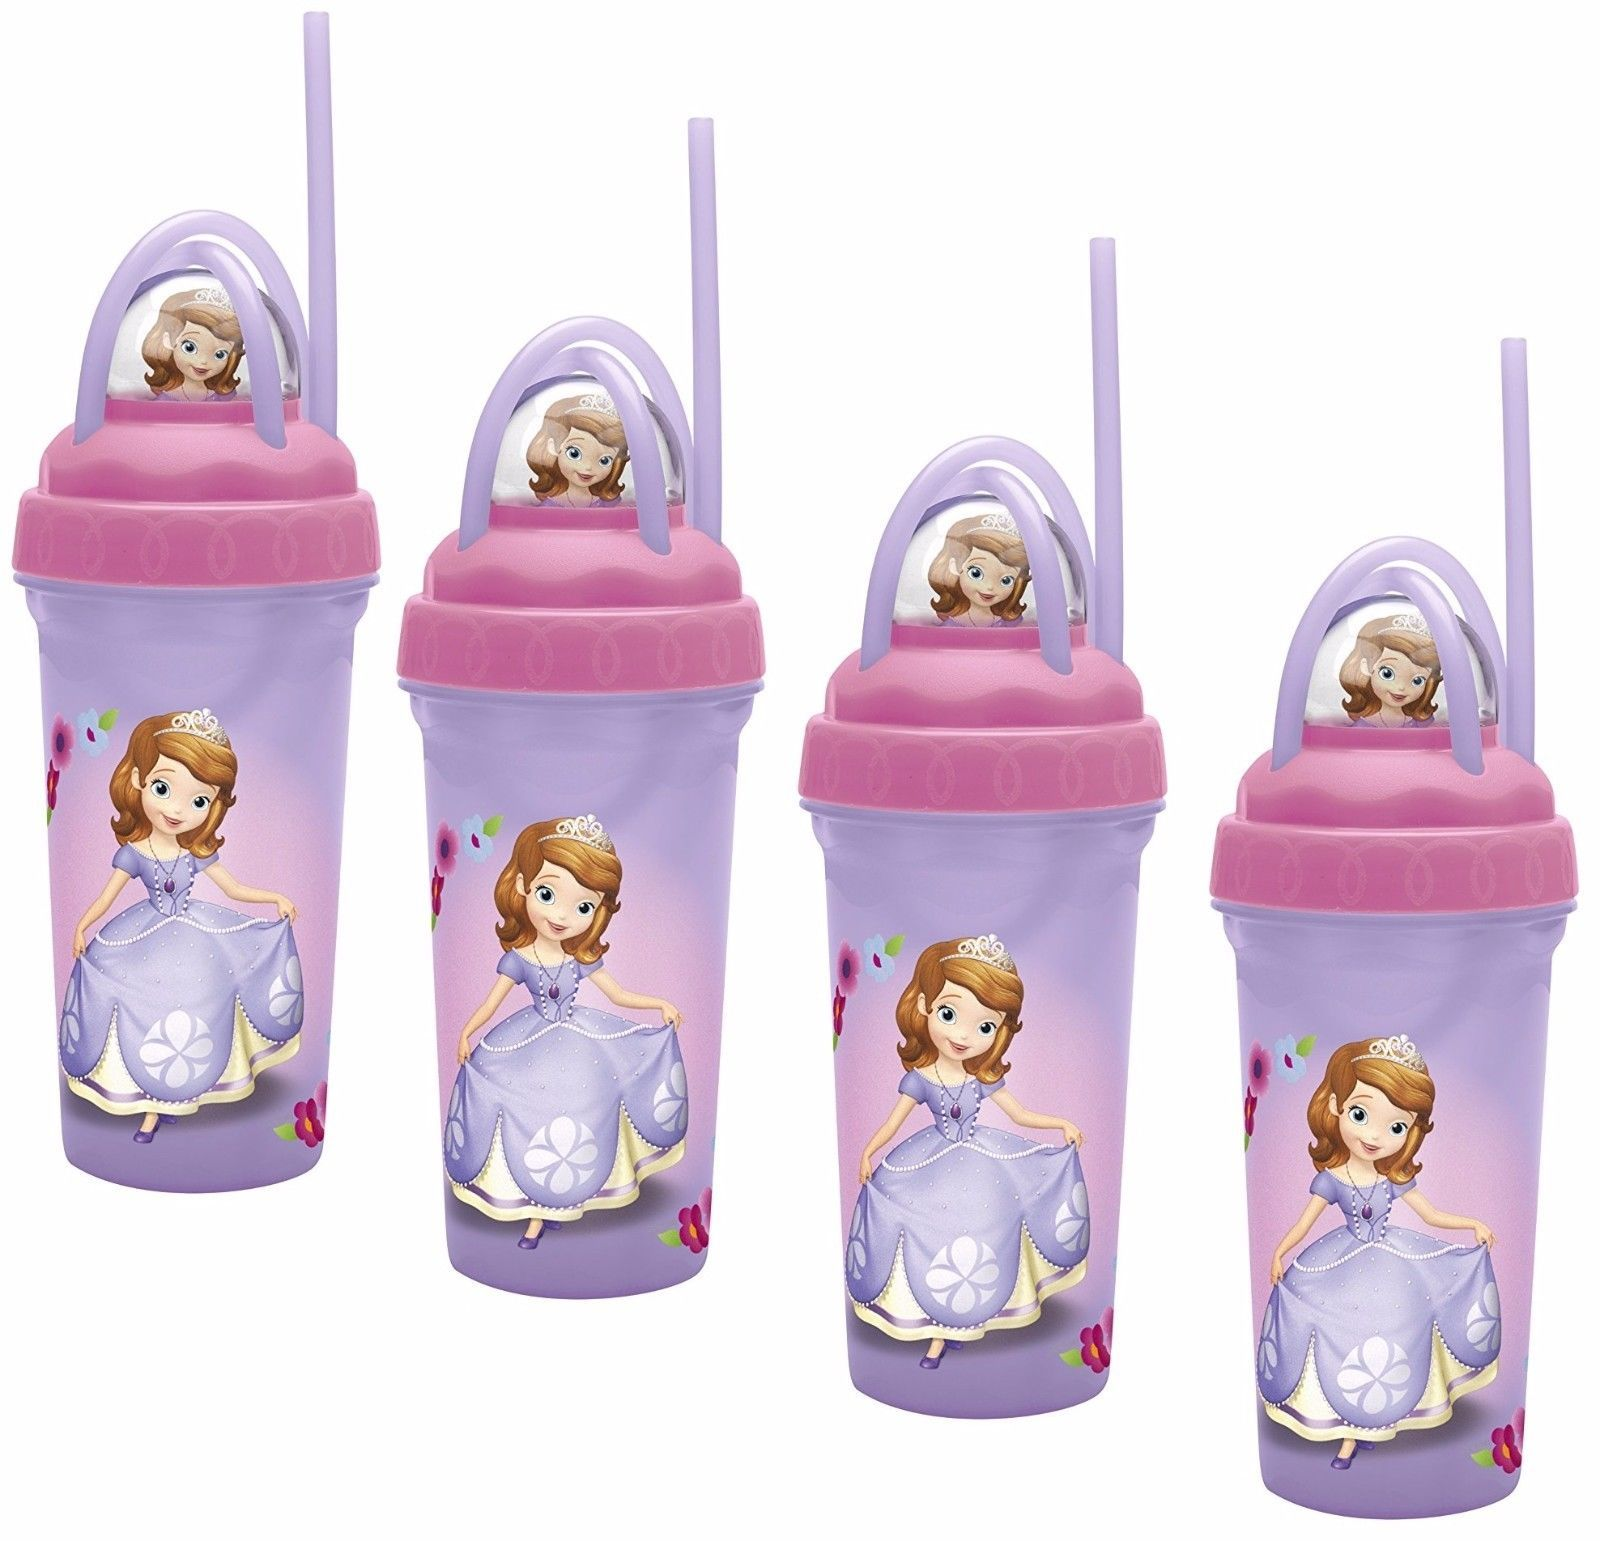 Zak Designs Disney's Sofia The First Loopity Loop Tumbler, 11oz - Pack of 4 - $12.86